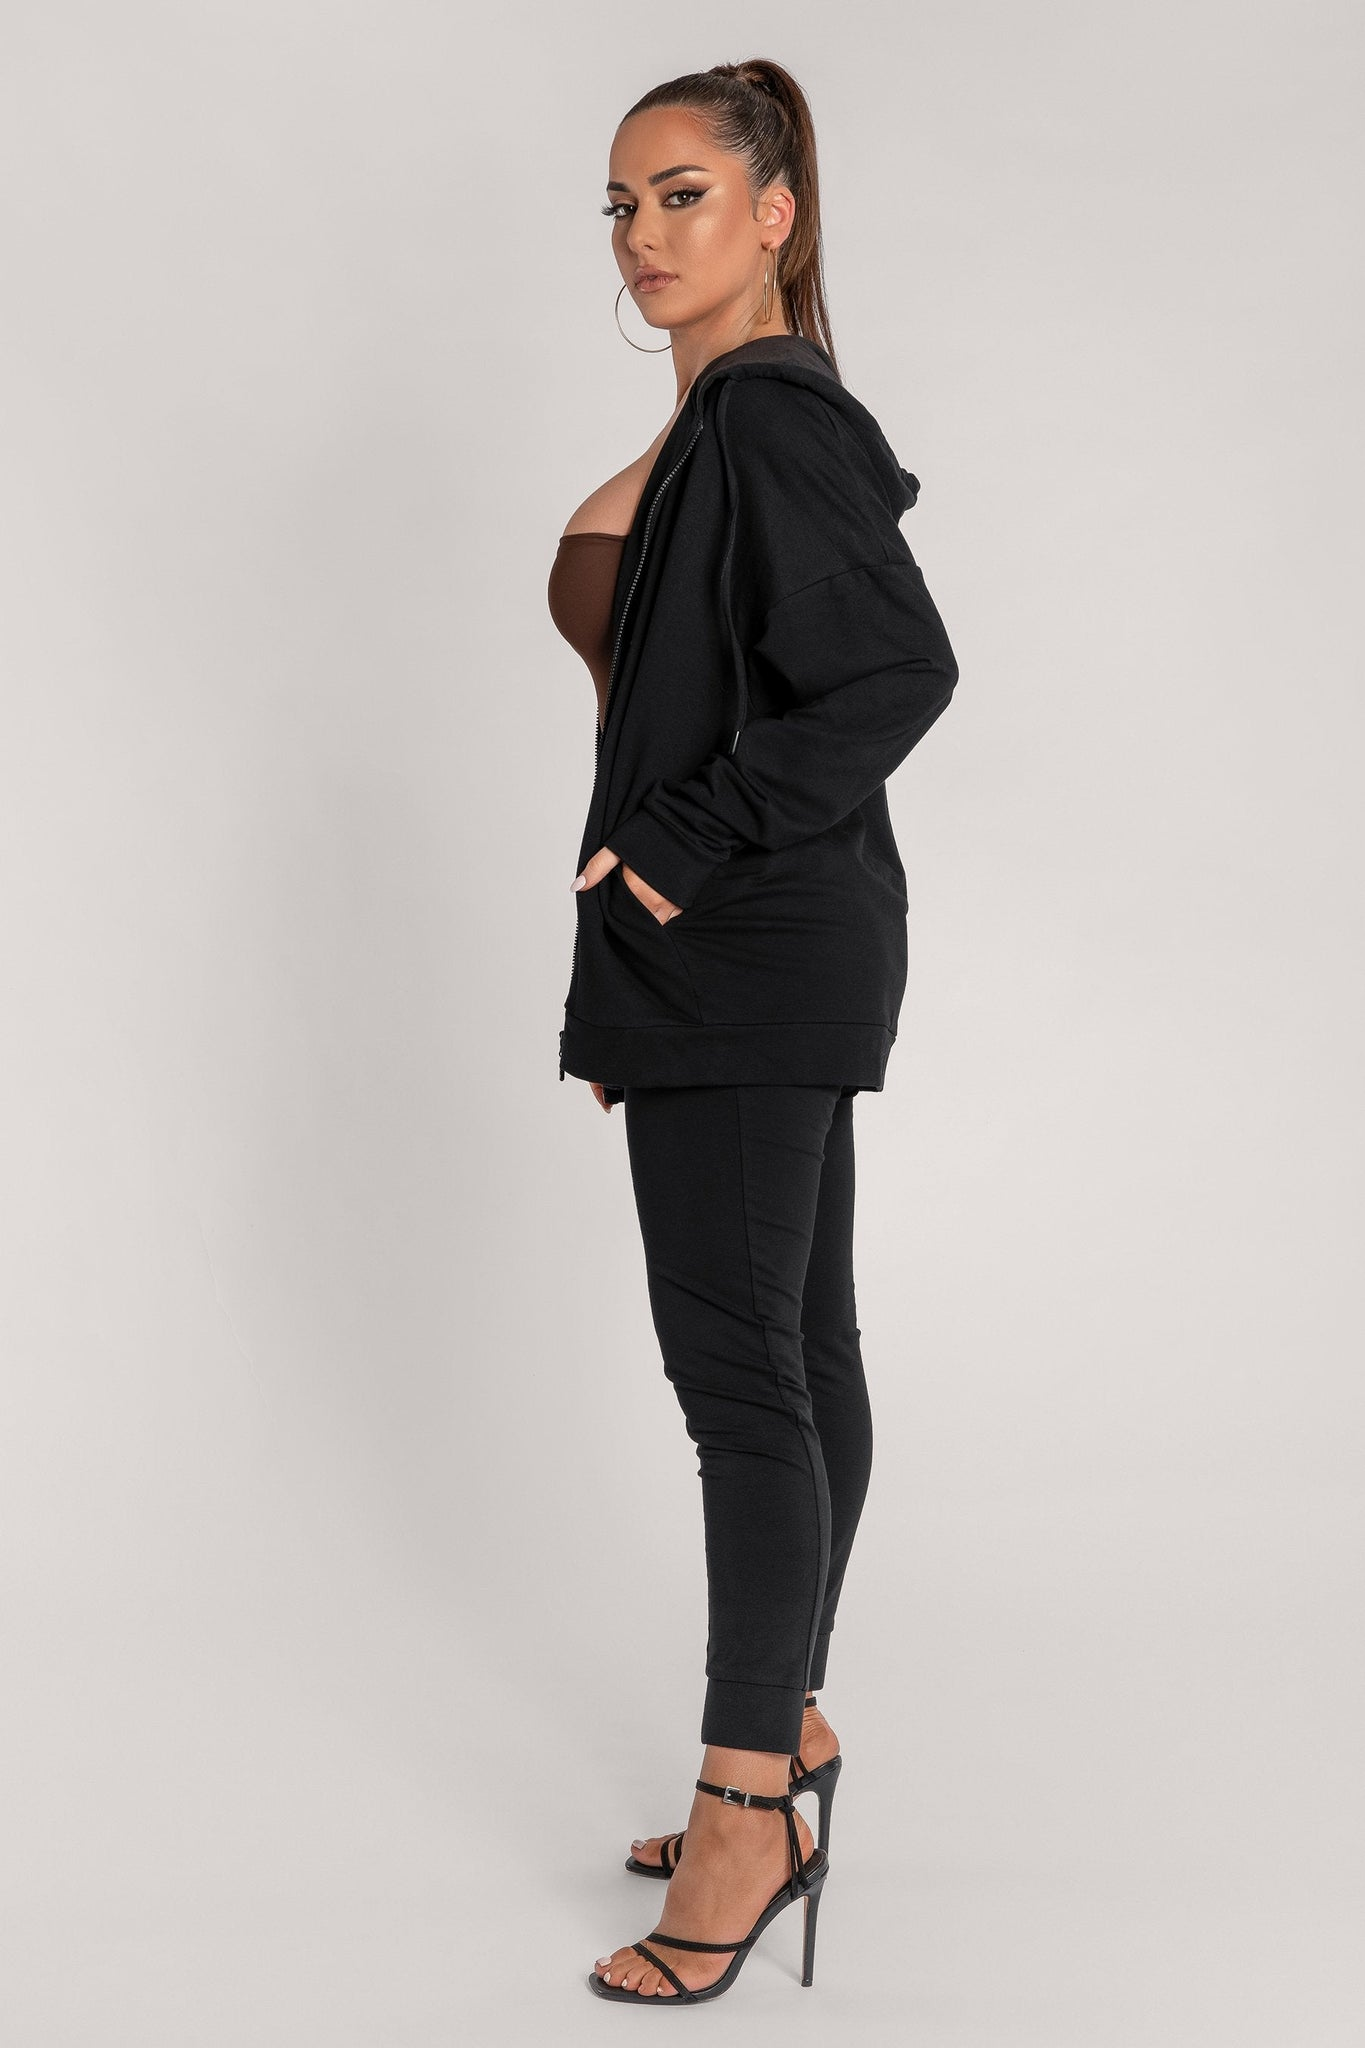 Maia Long Sleeve Zip Up Hoodie Jacket - Black - MESHKI